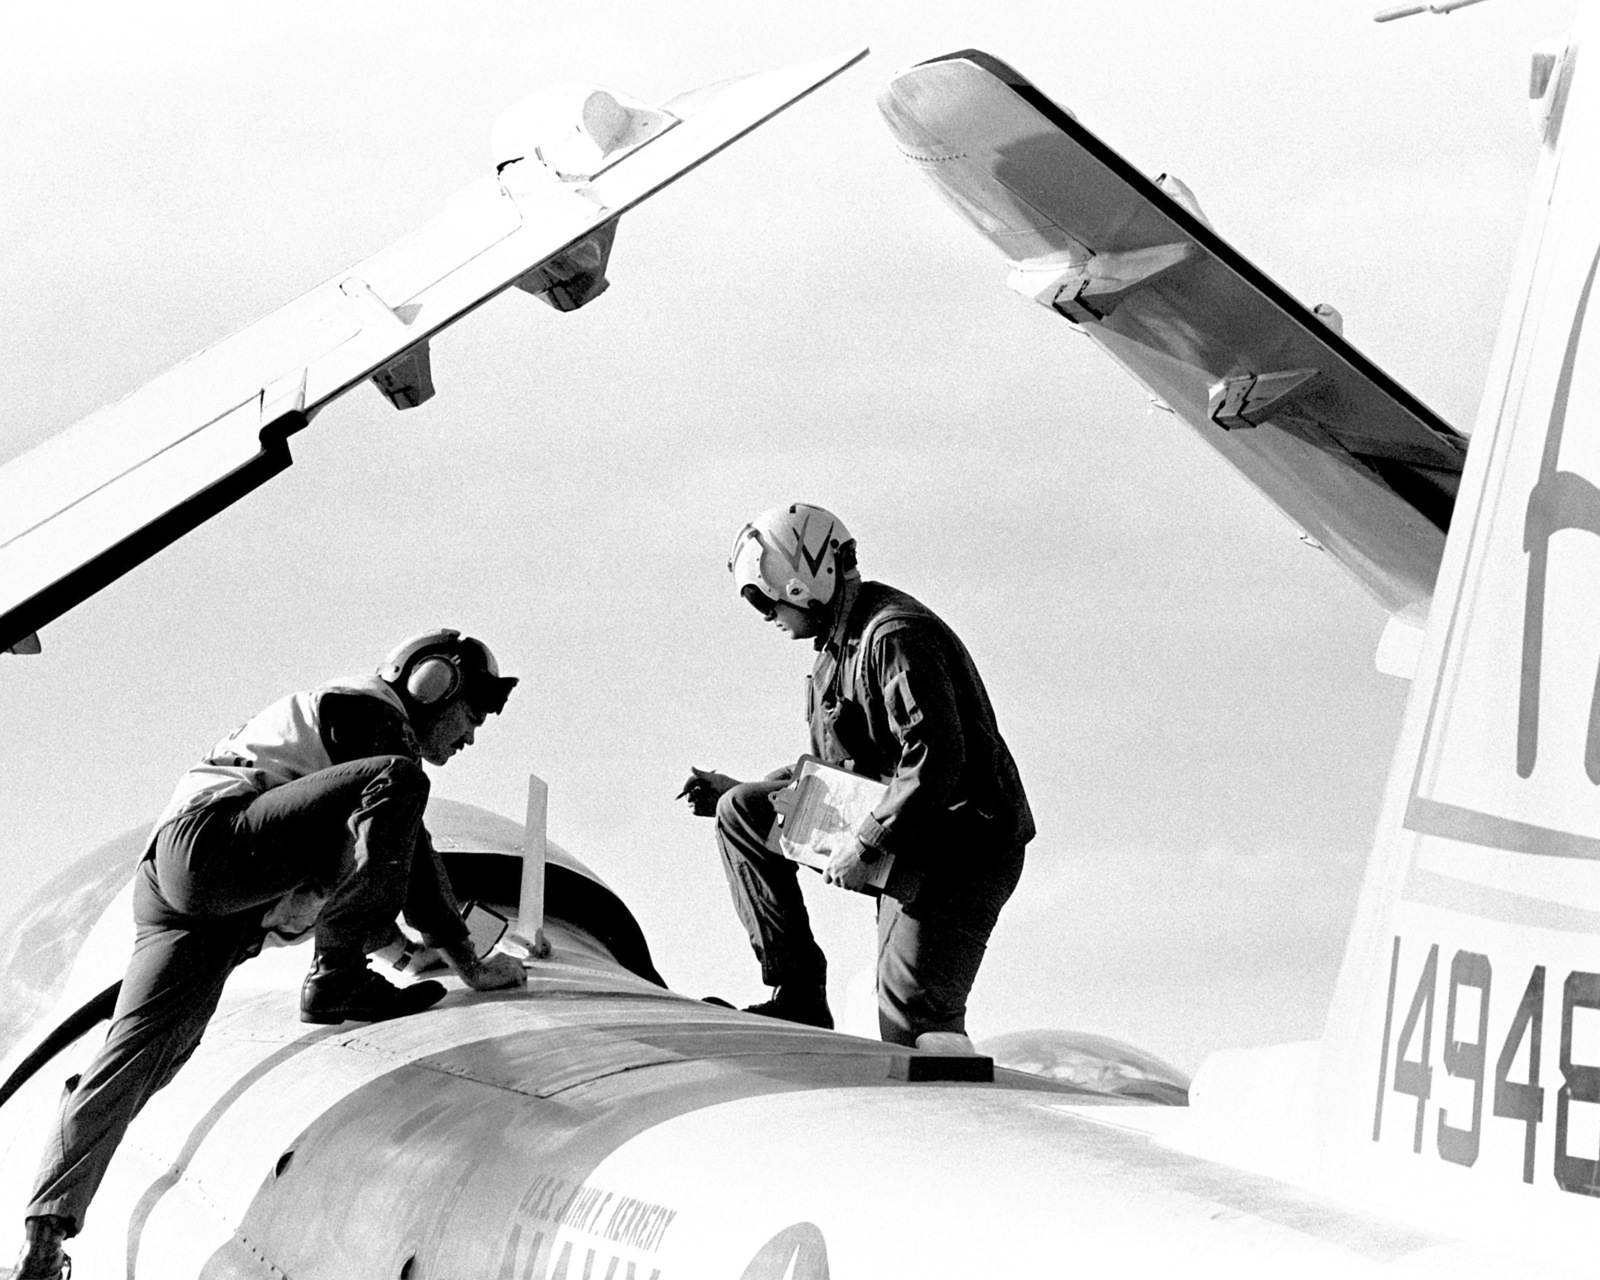 Two flight deck crew members inspect an A-6E Intruder aircraft aboard the aircraft carrier JOHN F. KENNEDY (CV-67) during FLEET EX 1-90